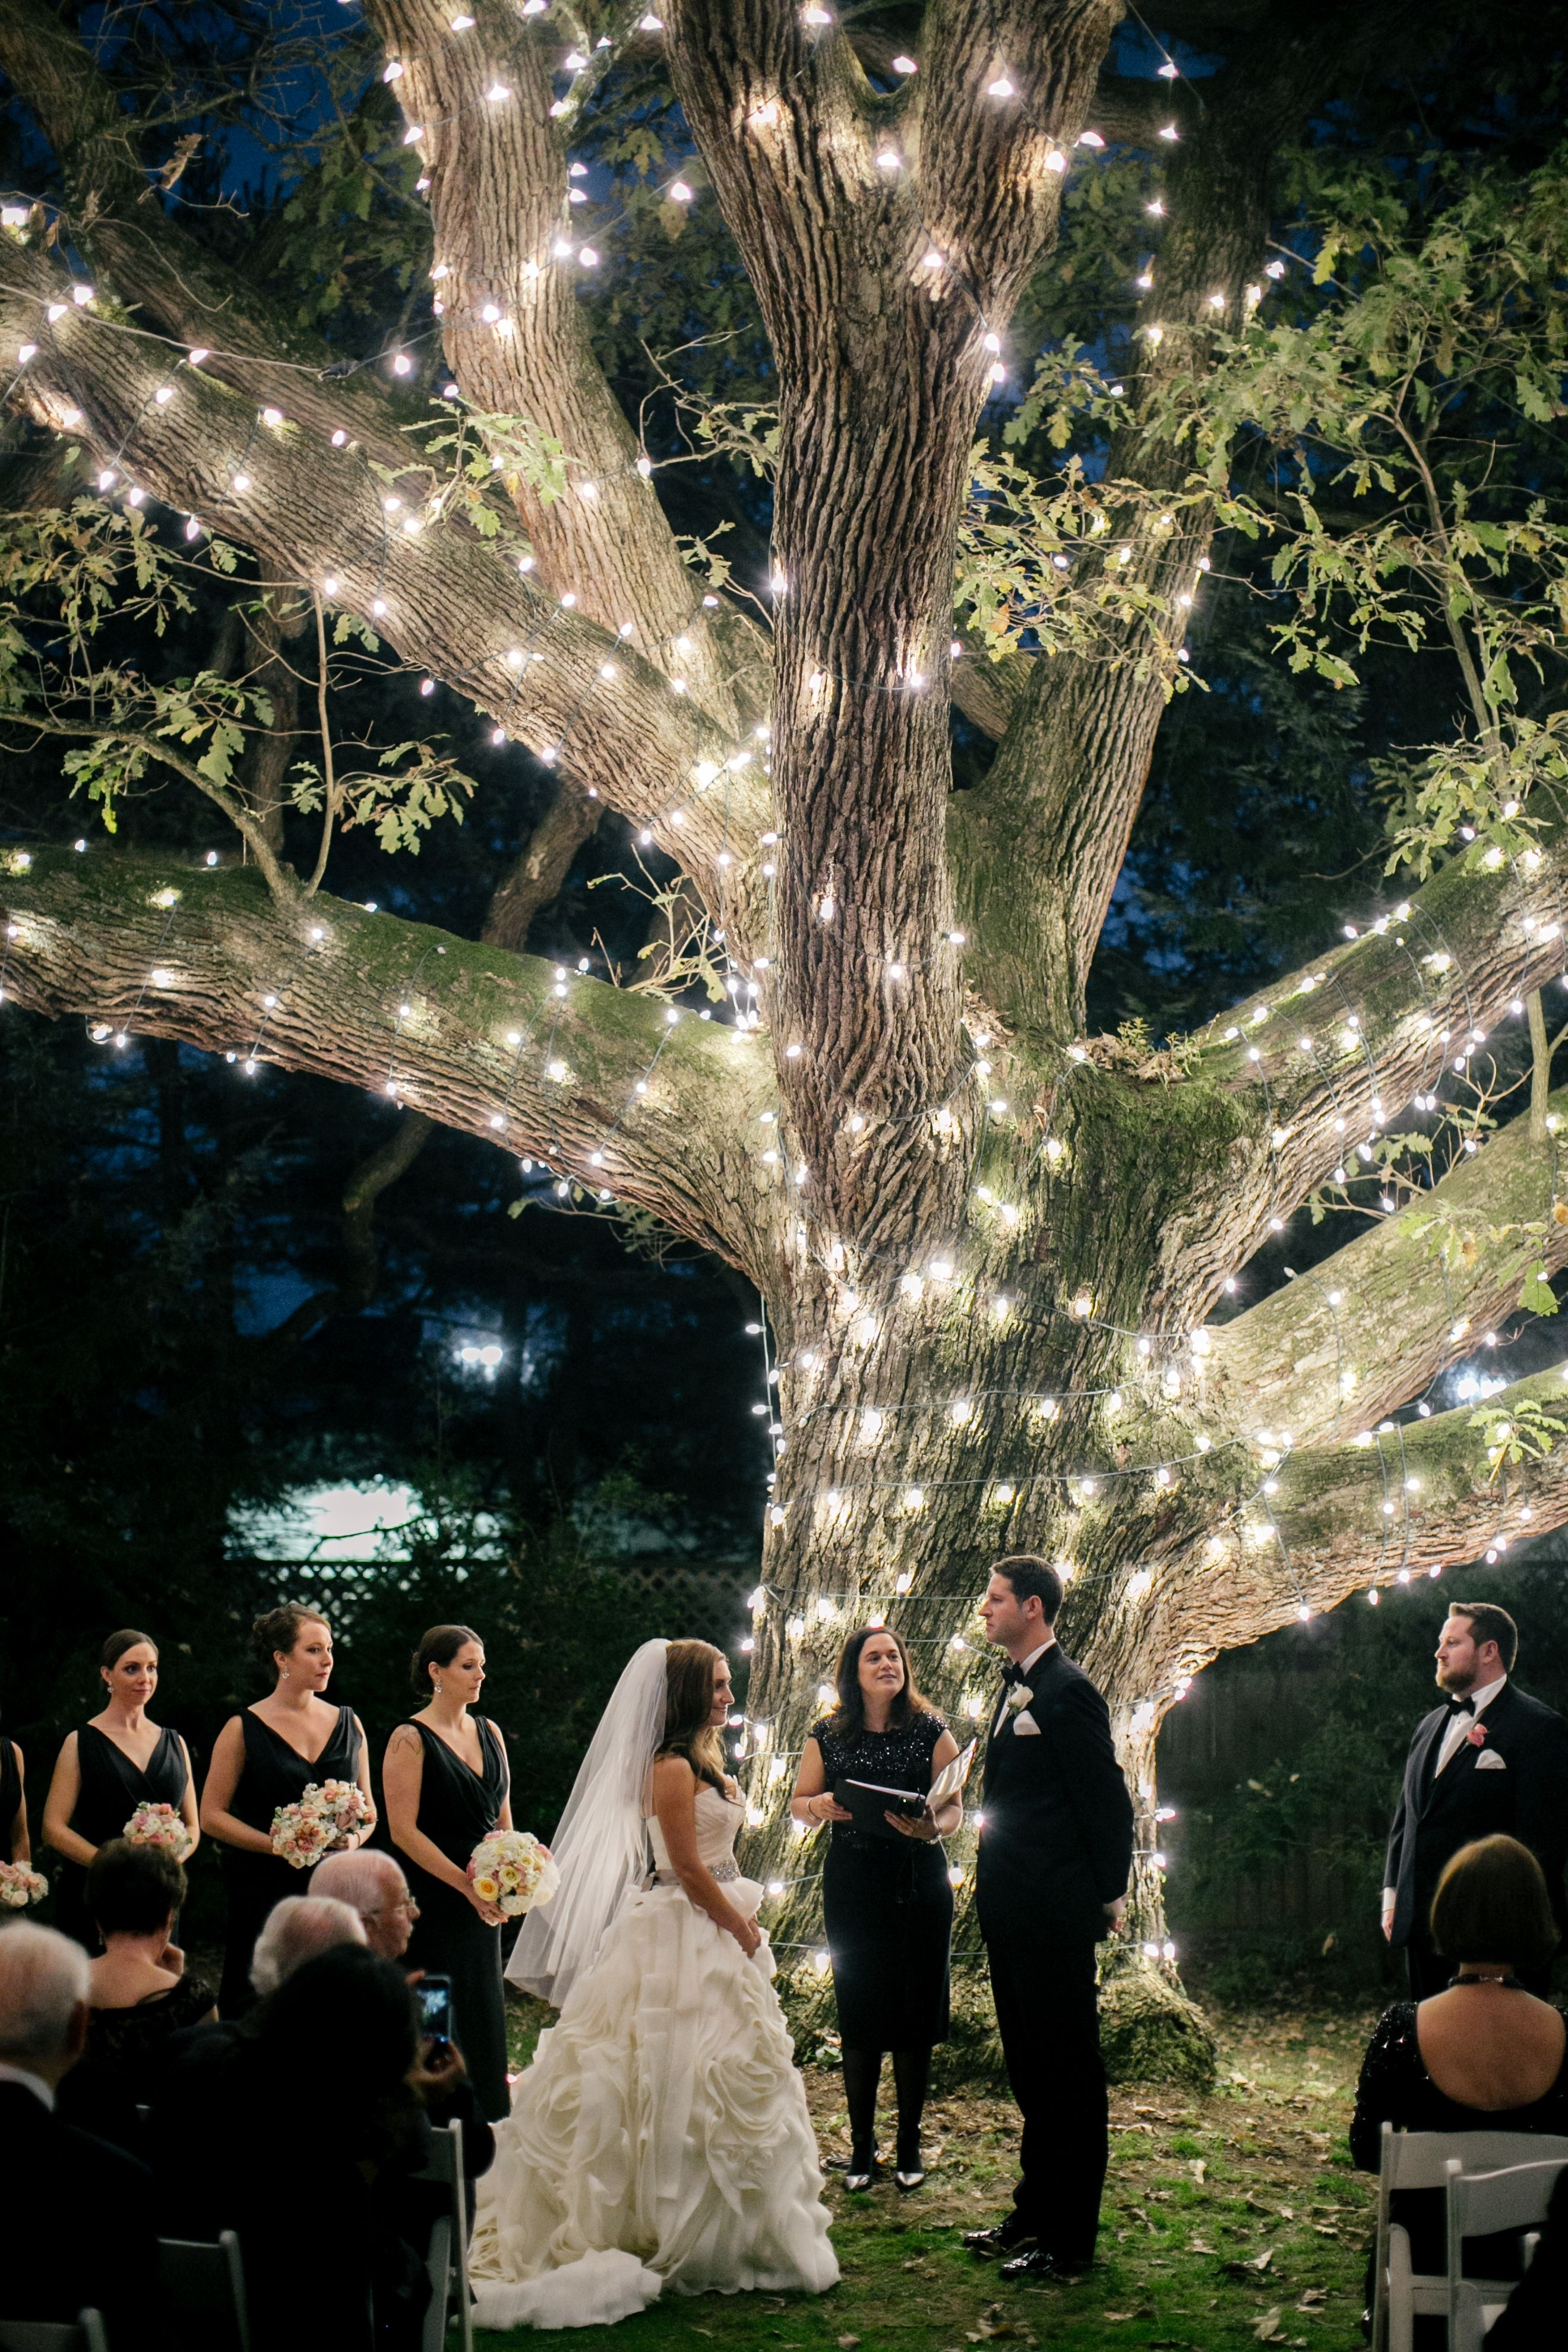 A Magical, Romantic Wedding At Aldie Mansion In Doylestown throughout Outdoor Lanterns For Wedding (Image 1 of 20)